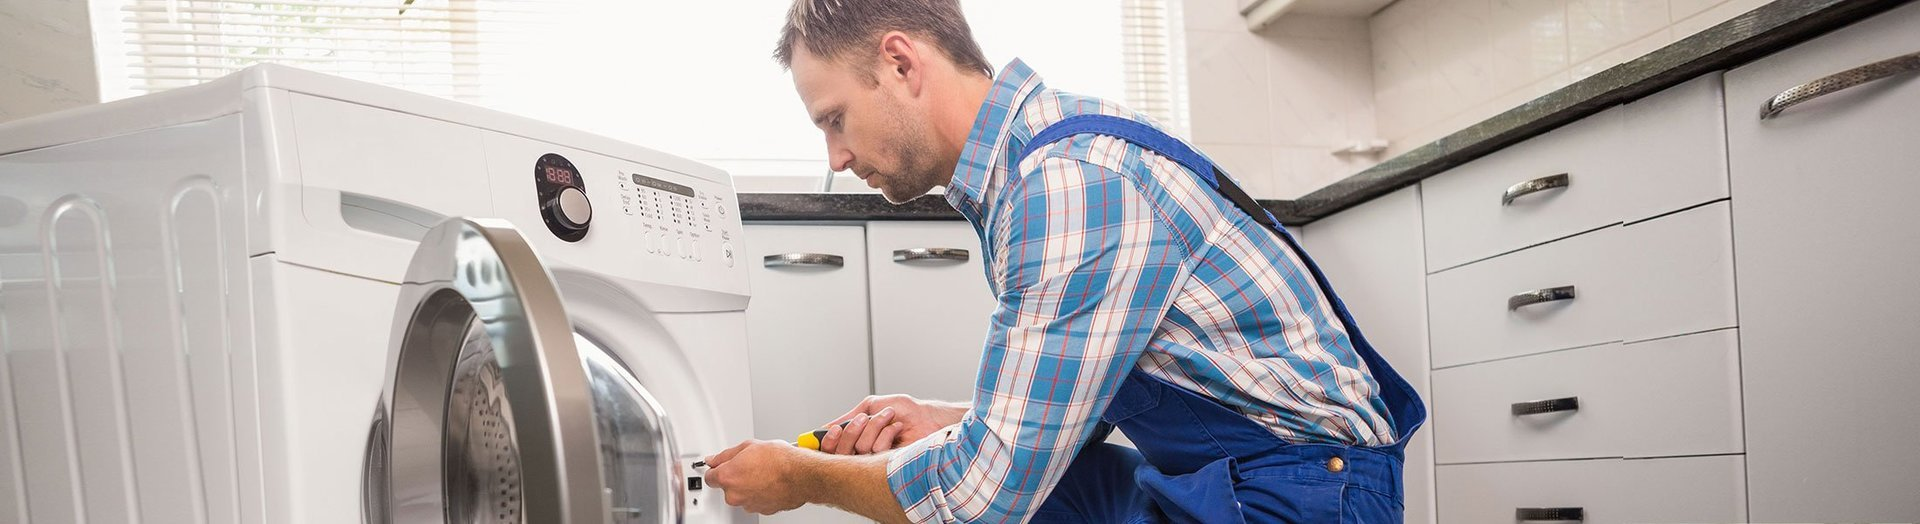 Over 25 Years of Experience in Appliance Repair